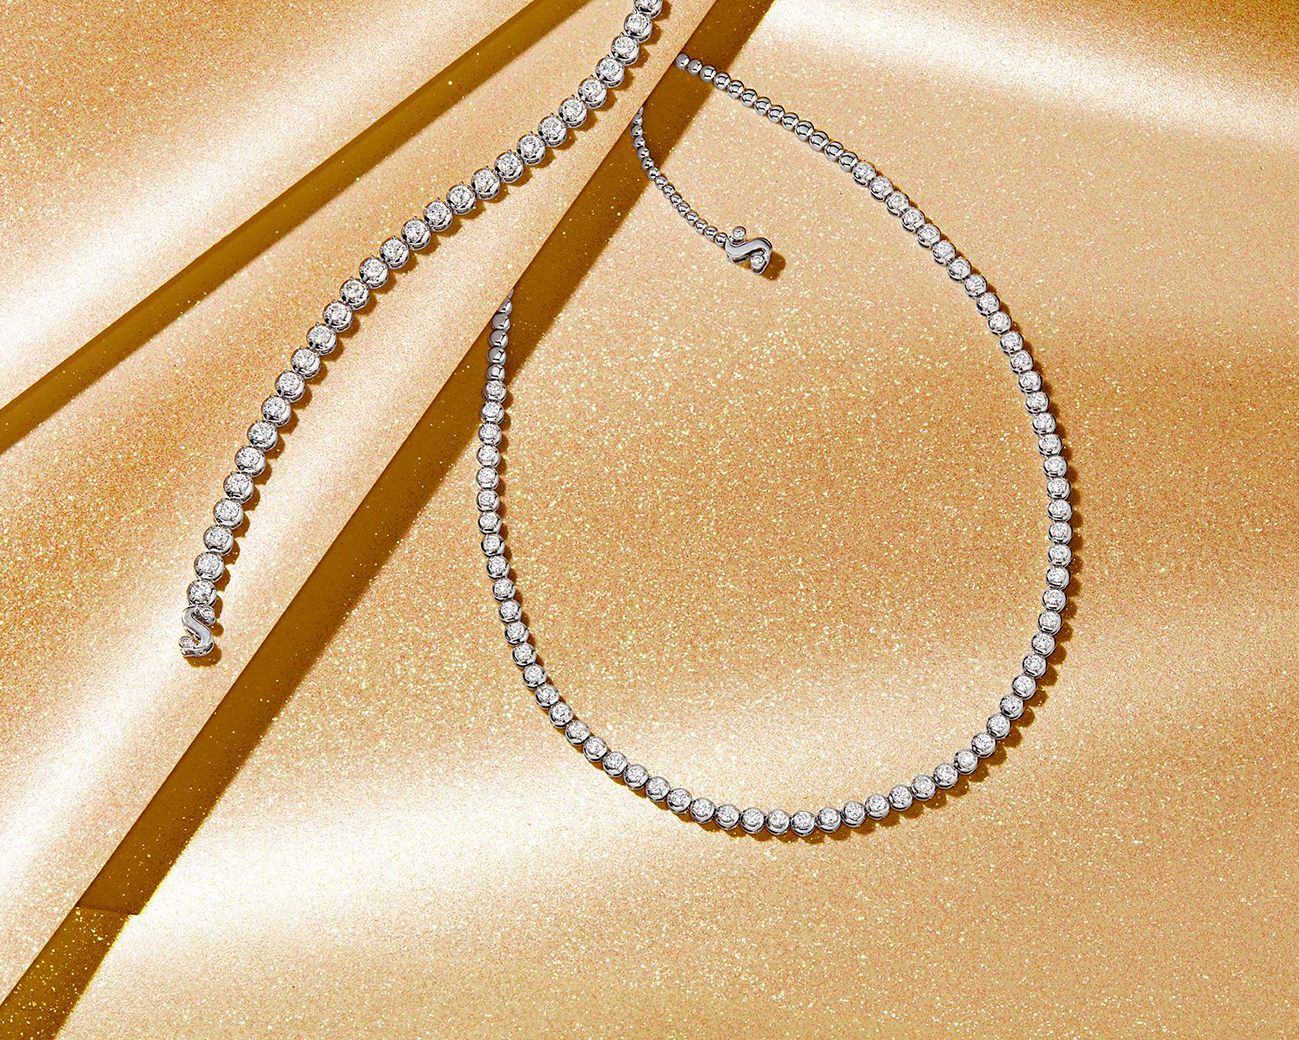 Serena Williams Jewelry Enters Exclusive Partnership with Zales